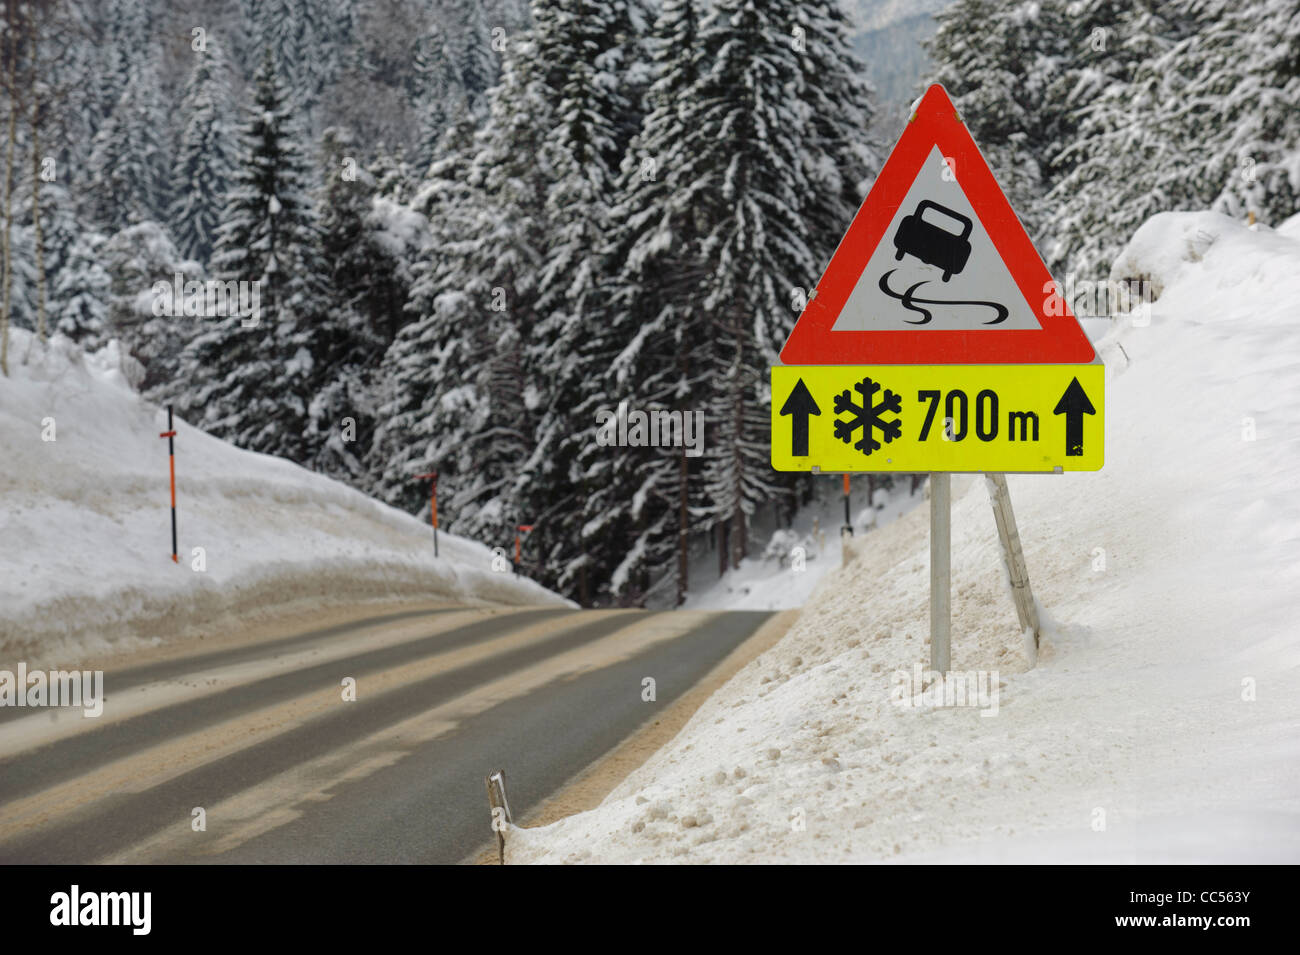 traffic sign warns of snow and ice - Stock Image